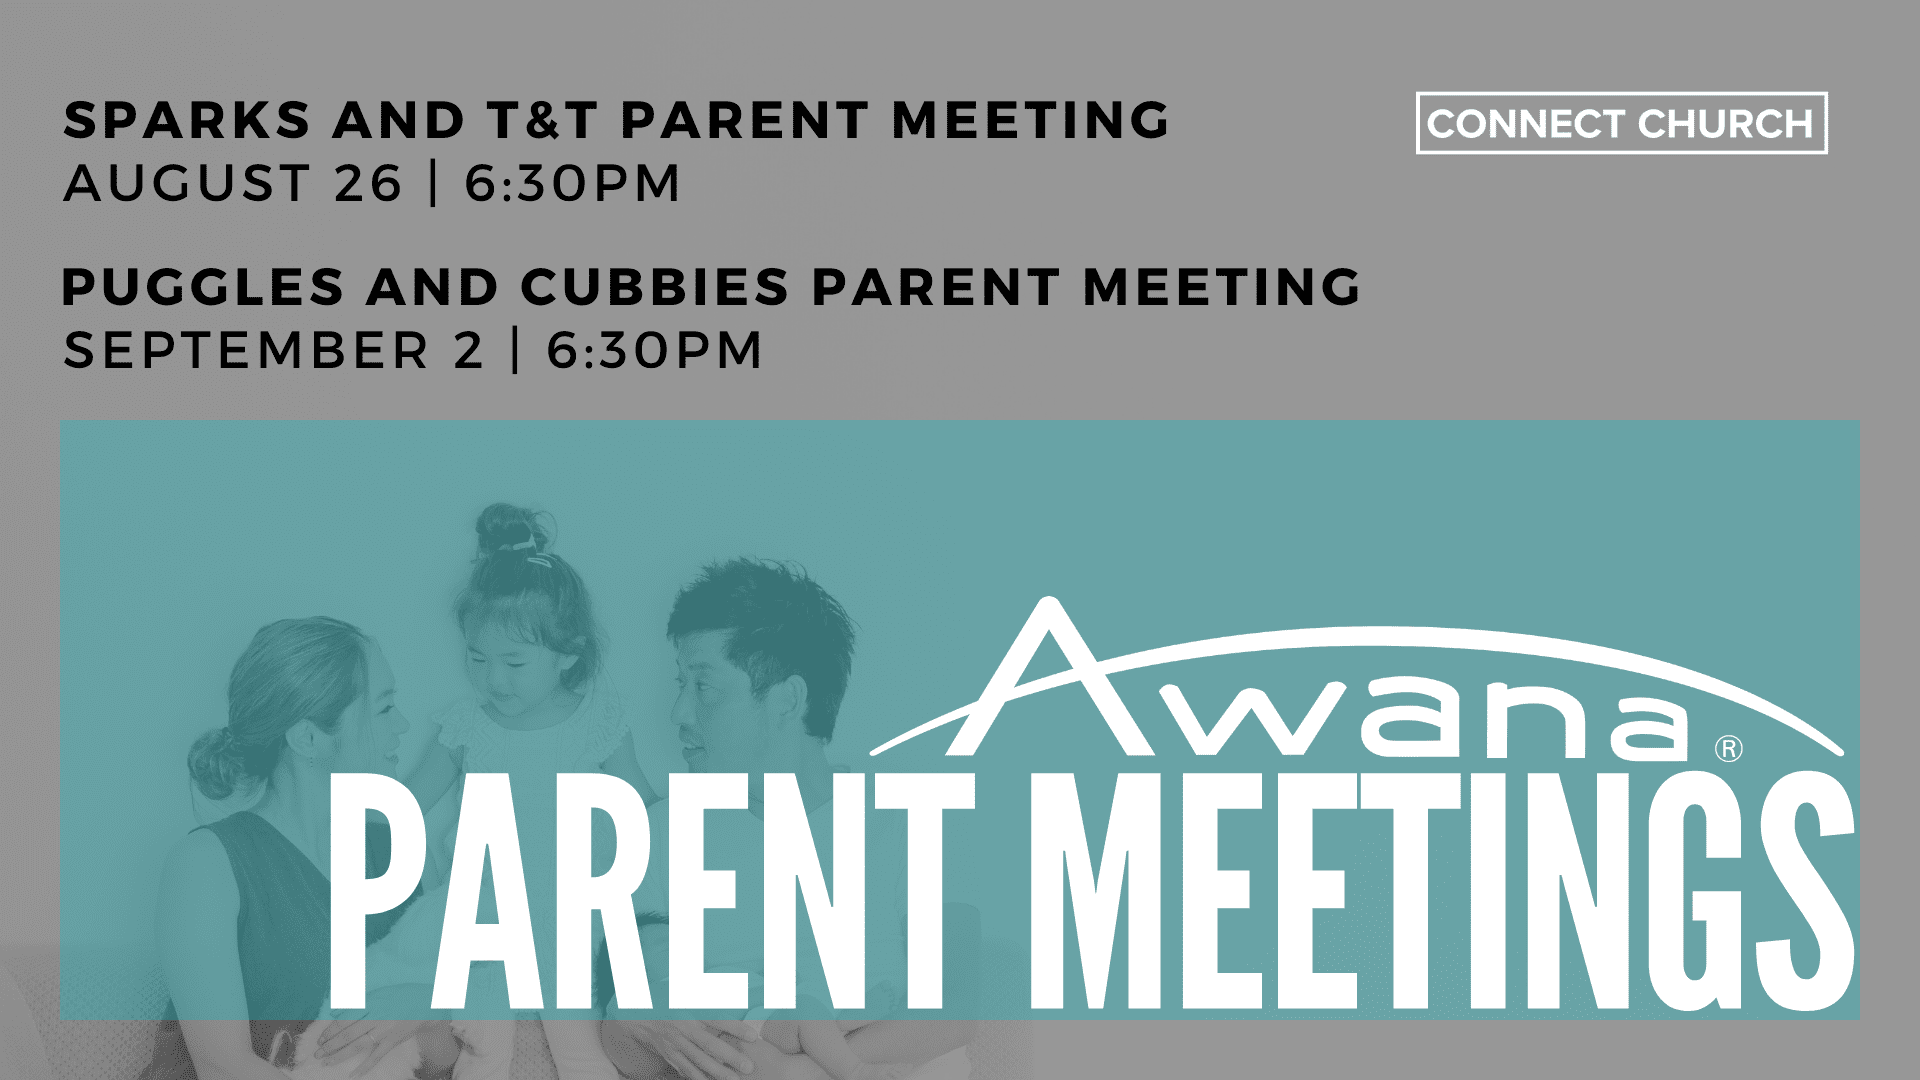 Awana Parent Meetings